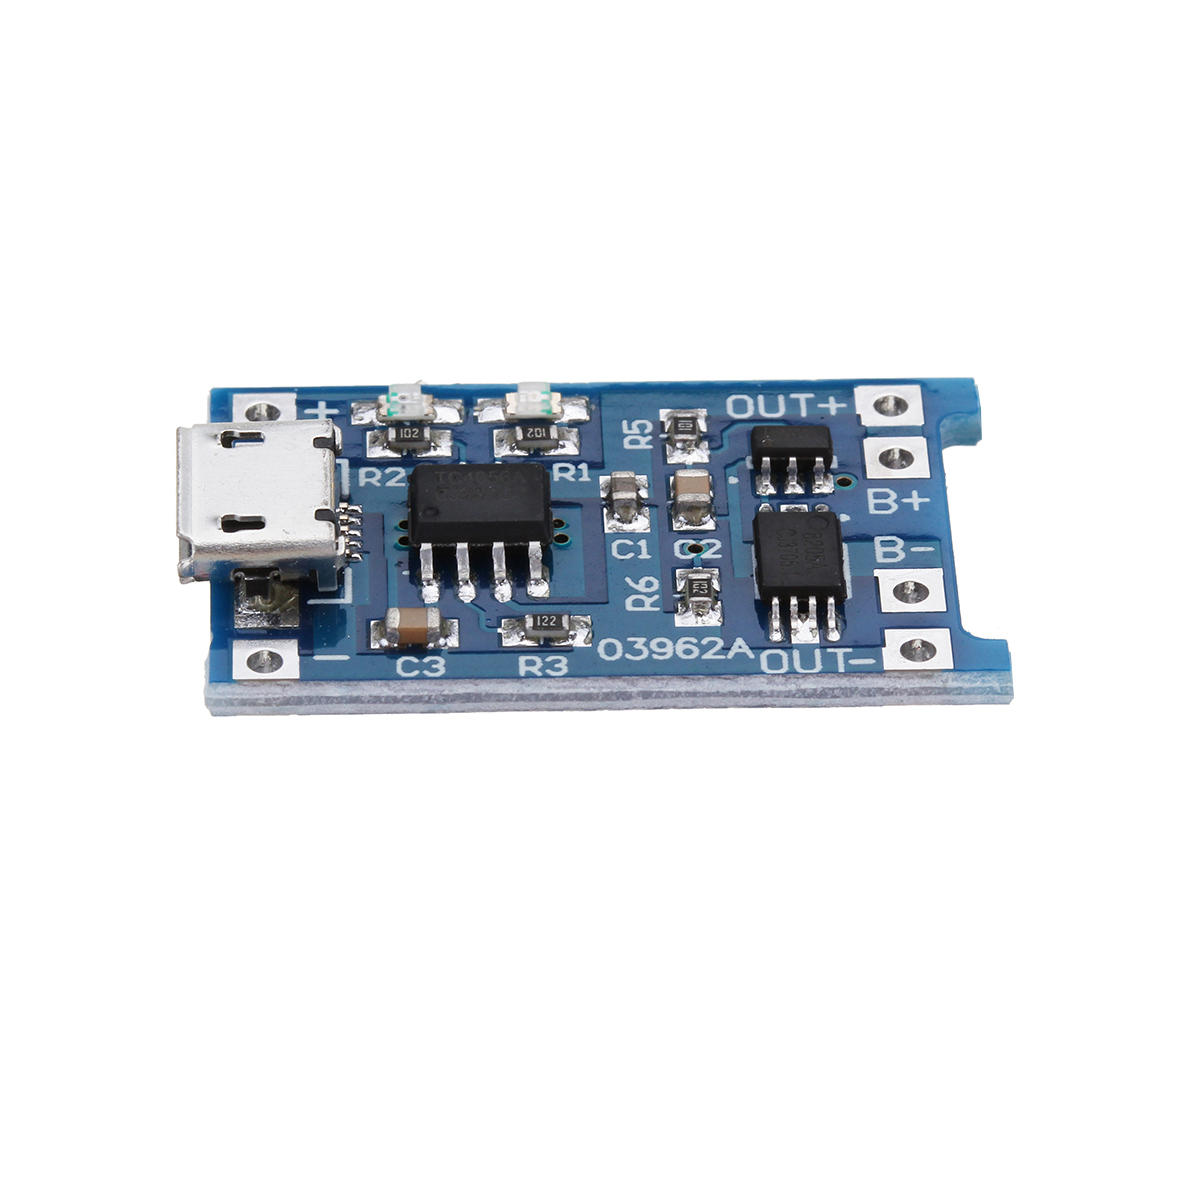 10Pcs 5V mini USB 1A 18650 TP4056 Lithium Battery Charging Board With Protect 9C